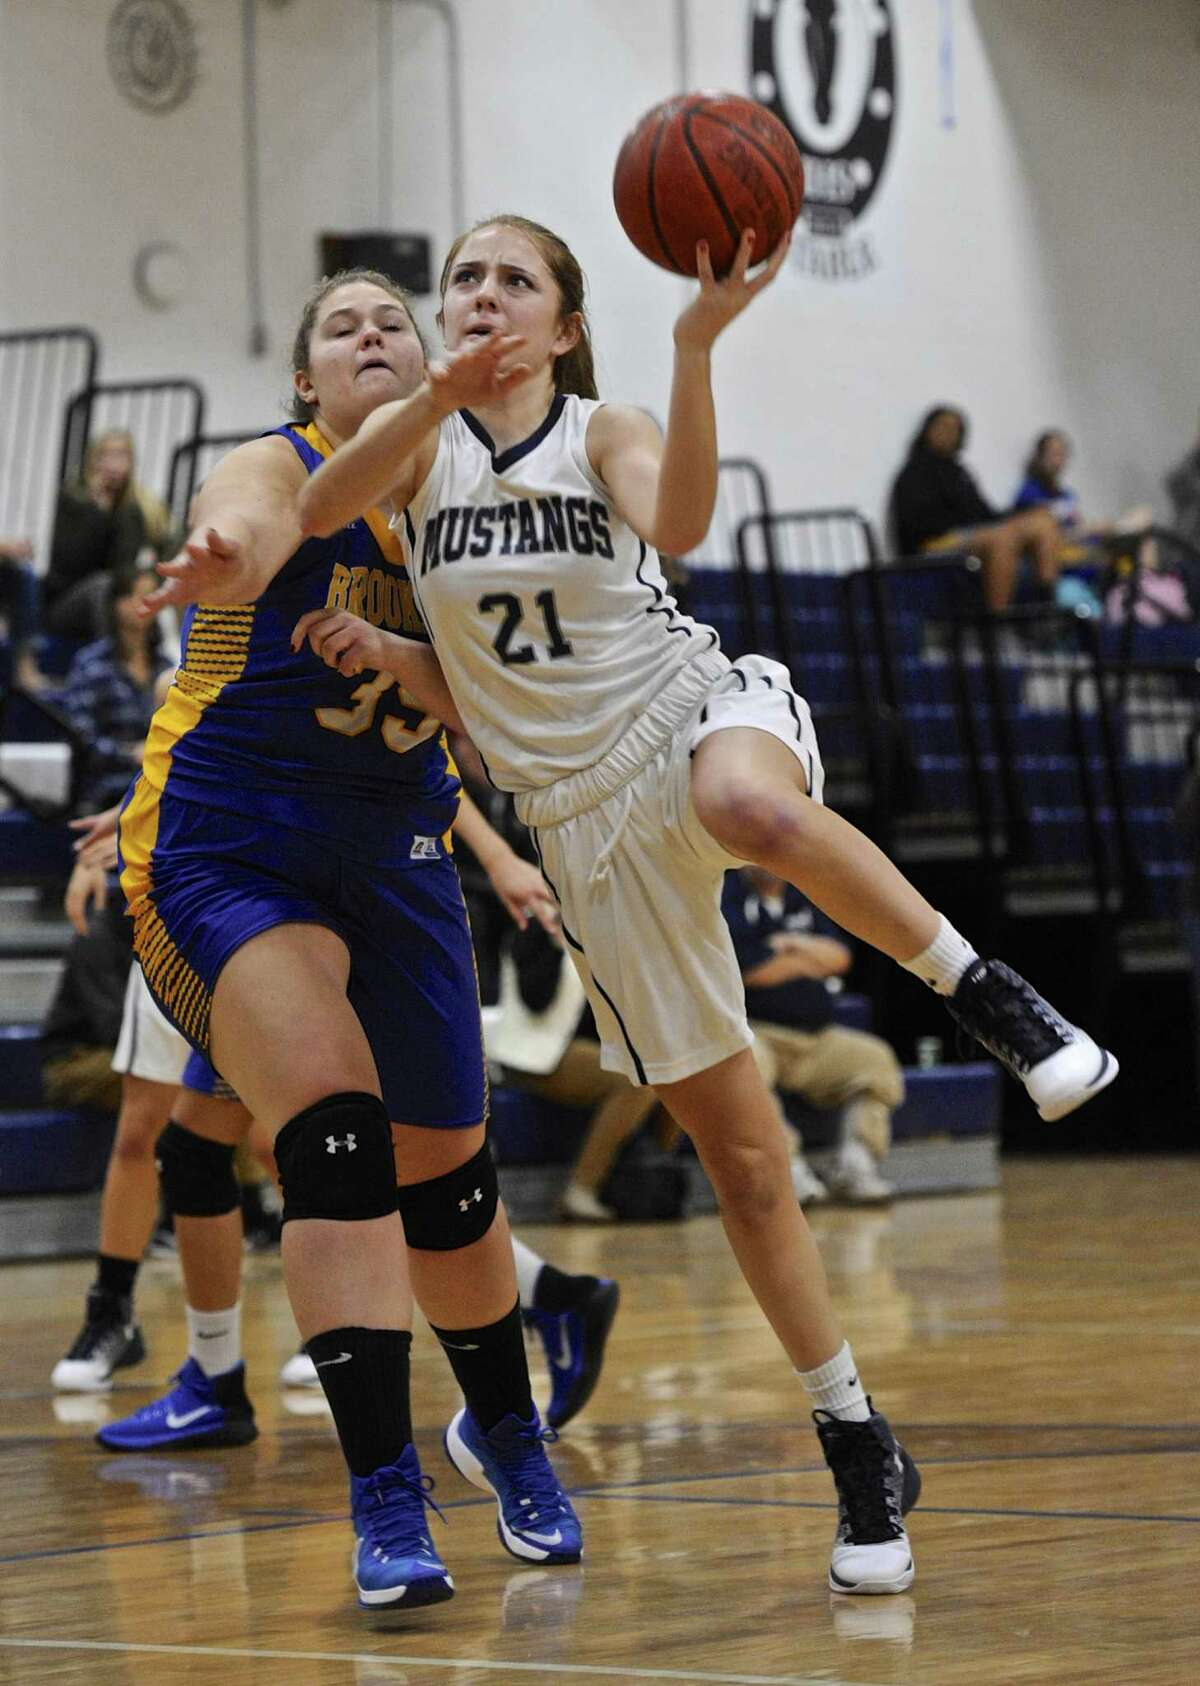 Immaculate's McKinsey Jarboe (21) drives to the basket past Brookfield's Lindsey Zaleski (35) during their basketball game Thursday night at Immaculate High School.